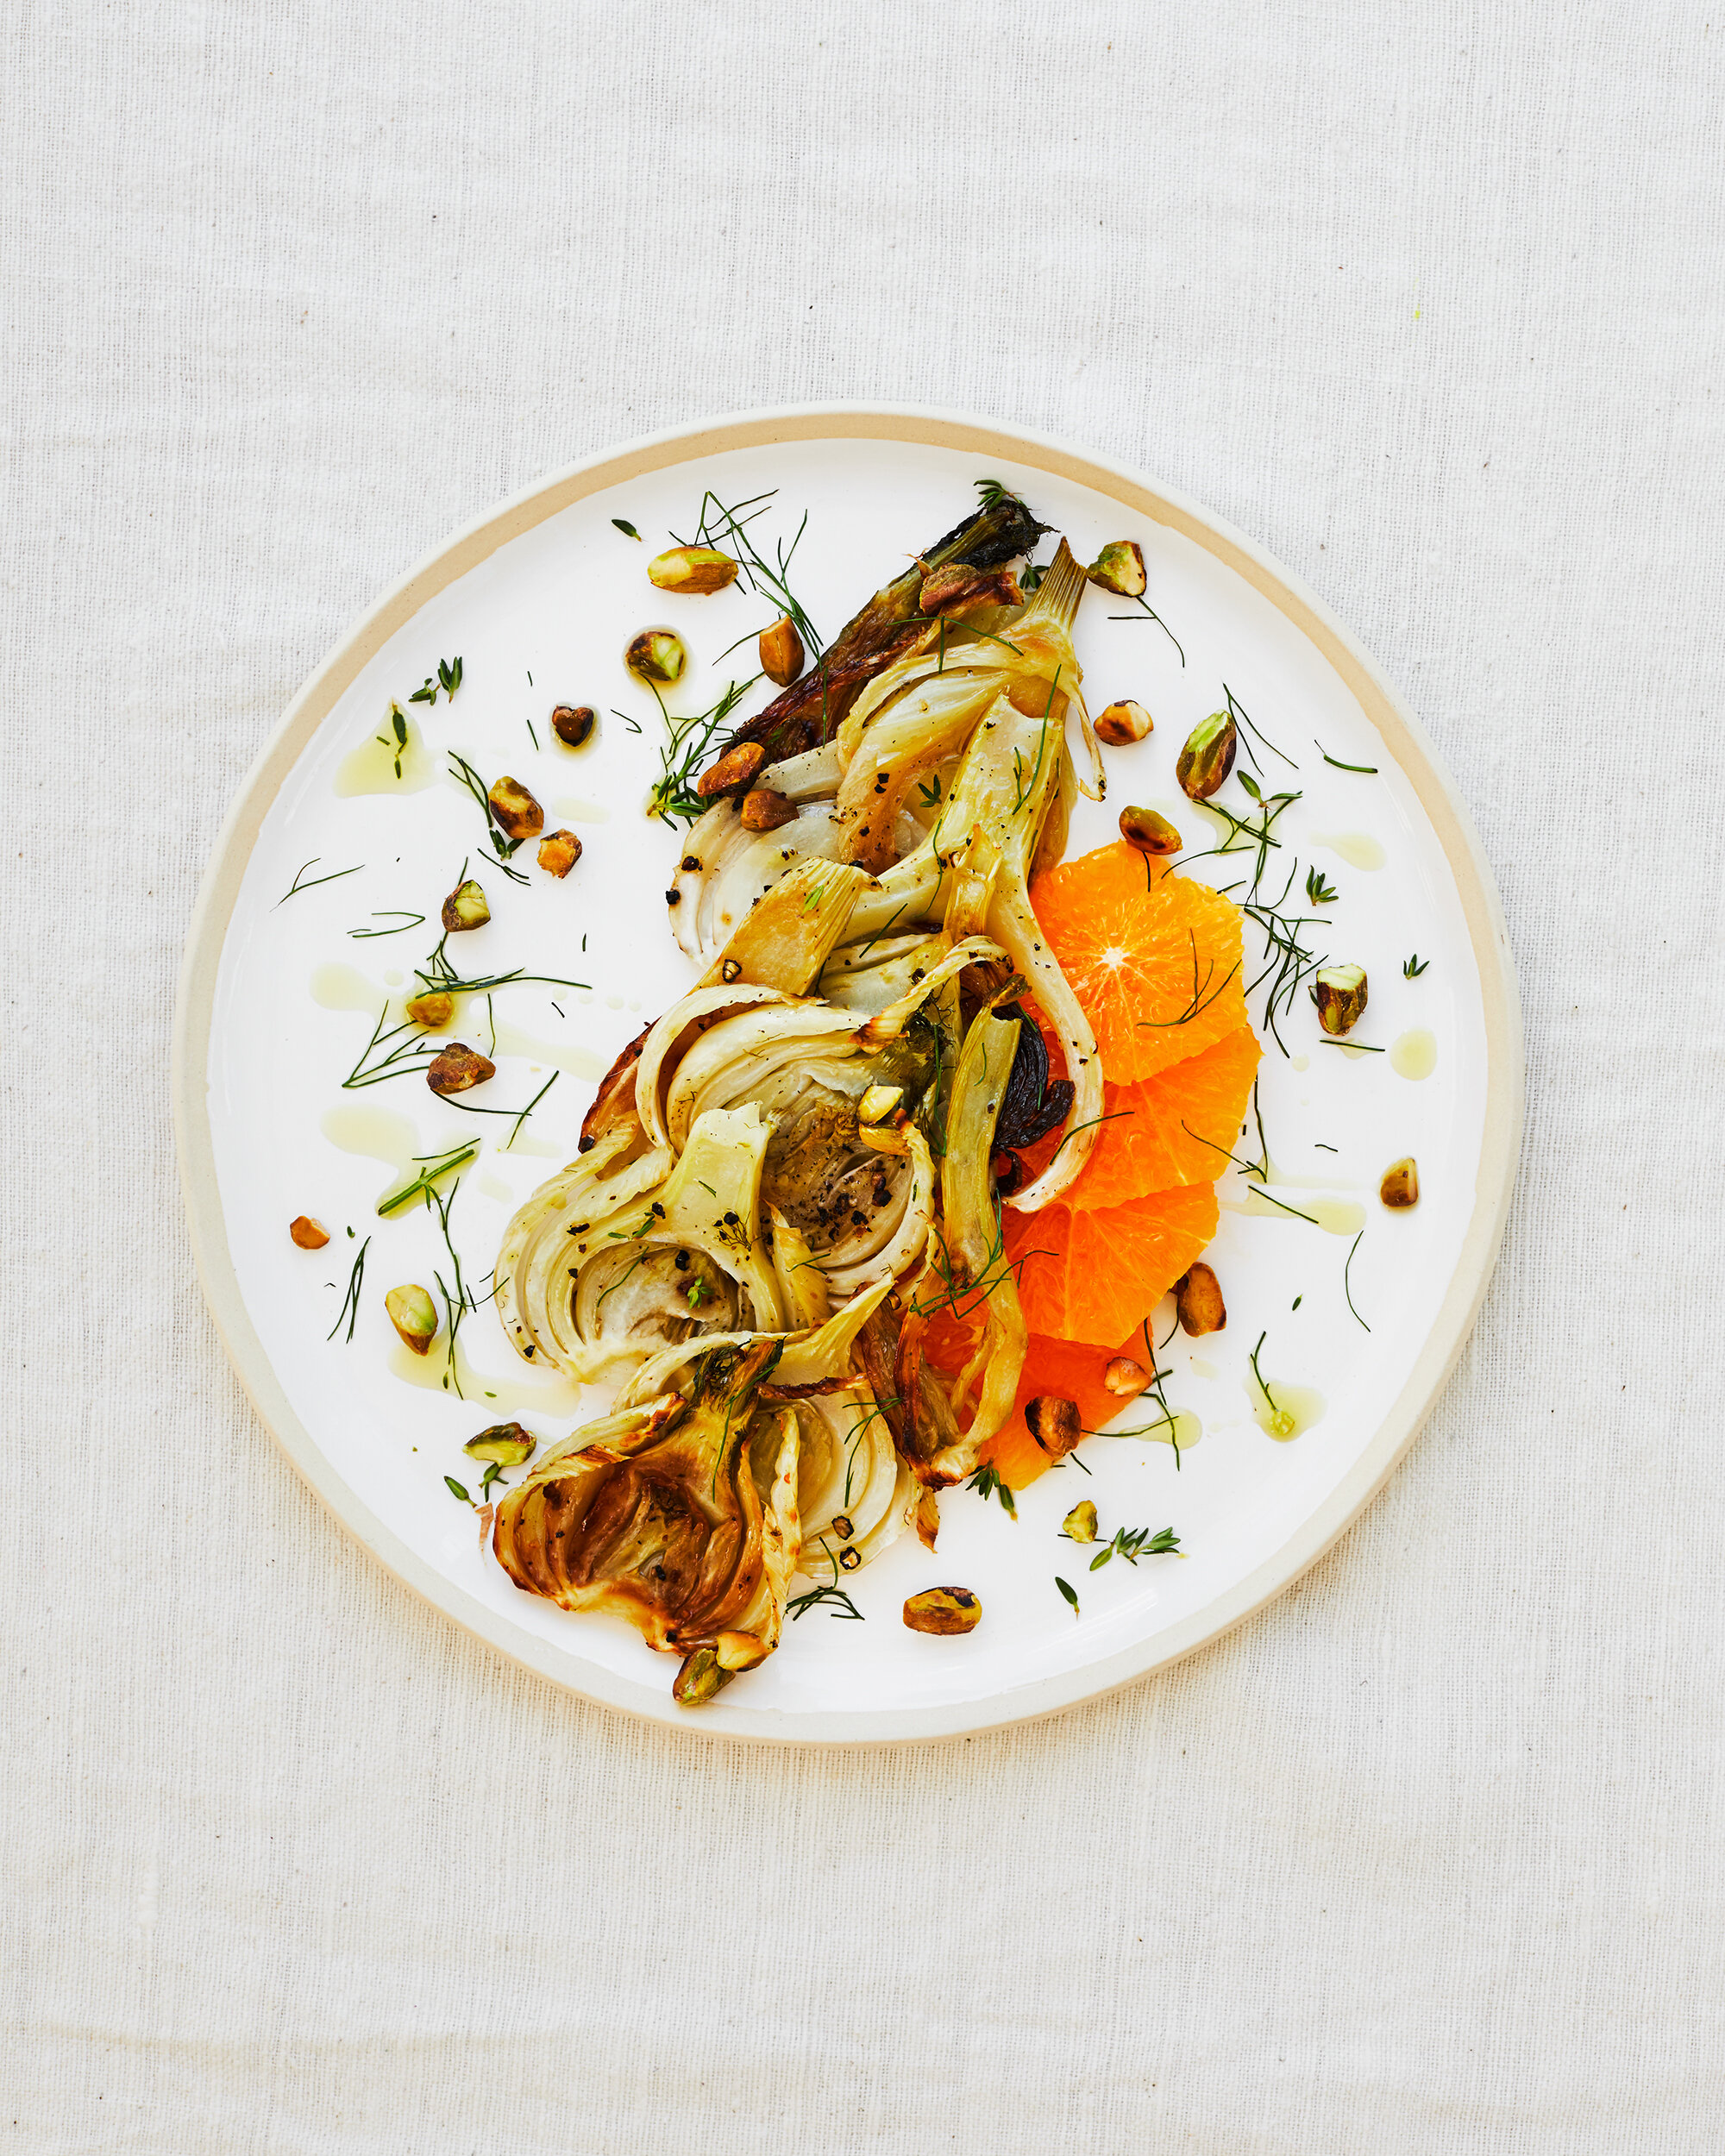 Roasted Fennel, Pistachio & Orange Salad - gluten-free | serves 4 | Ingredients ⤵︎4 bulbs fennel2 oranges½ cup pistachios, shelled & chopped2 tbs olive oil + additional for servingSalt and pepper